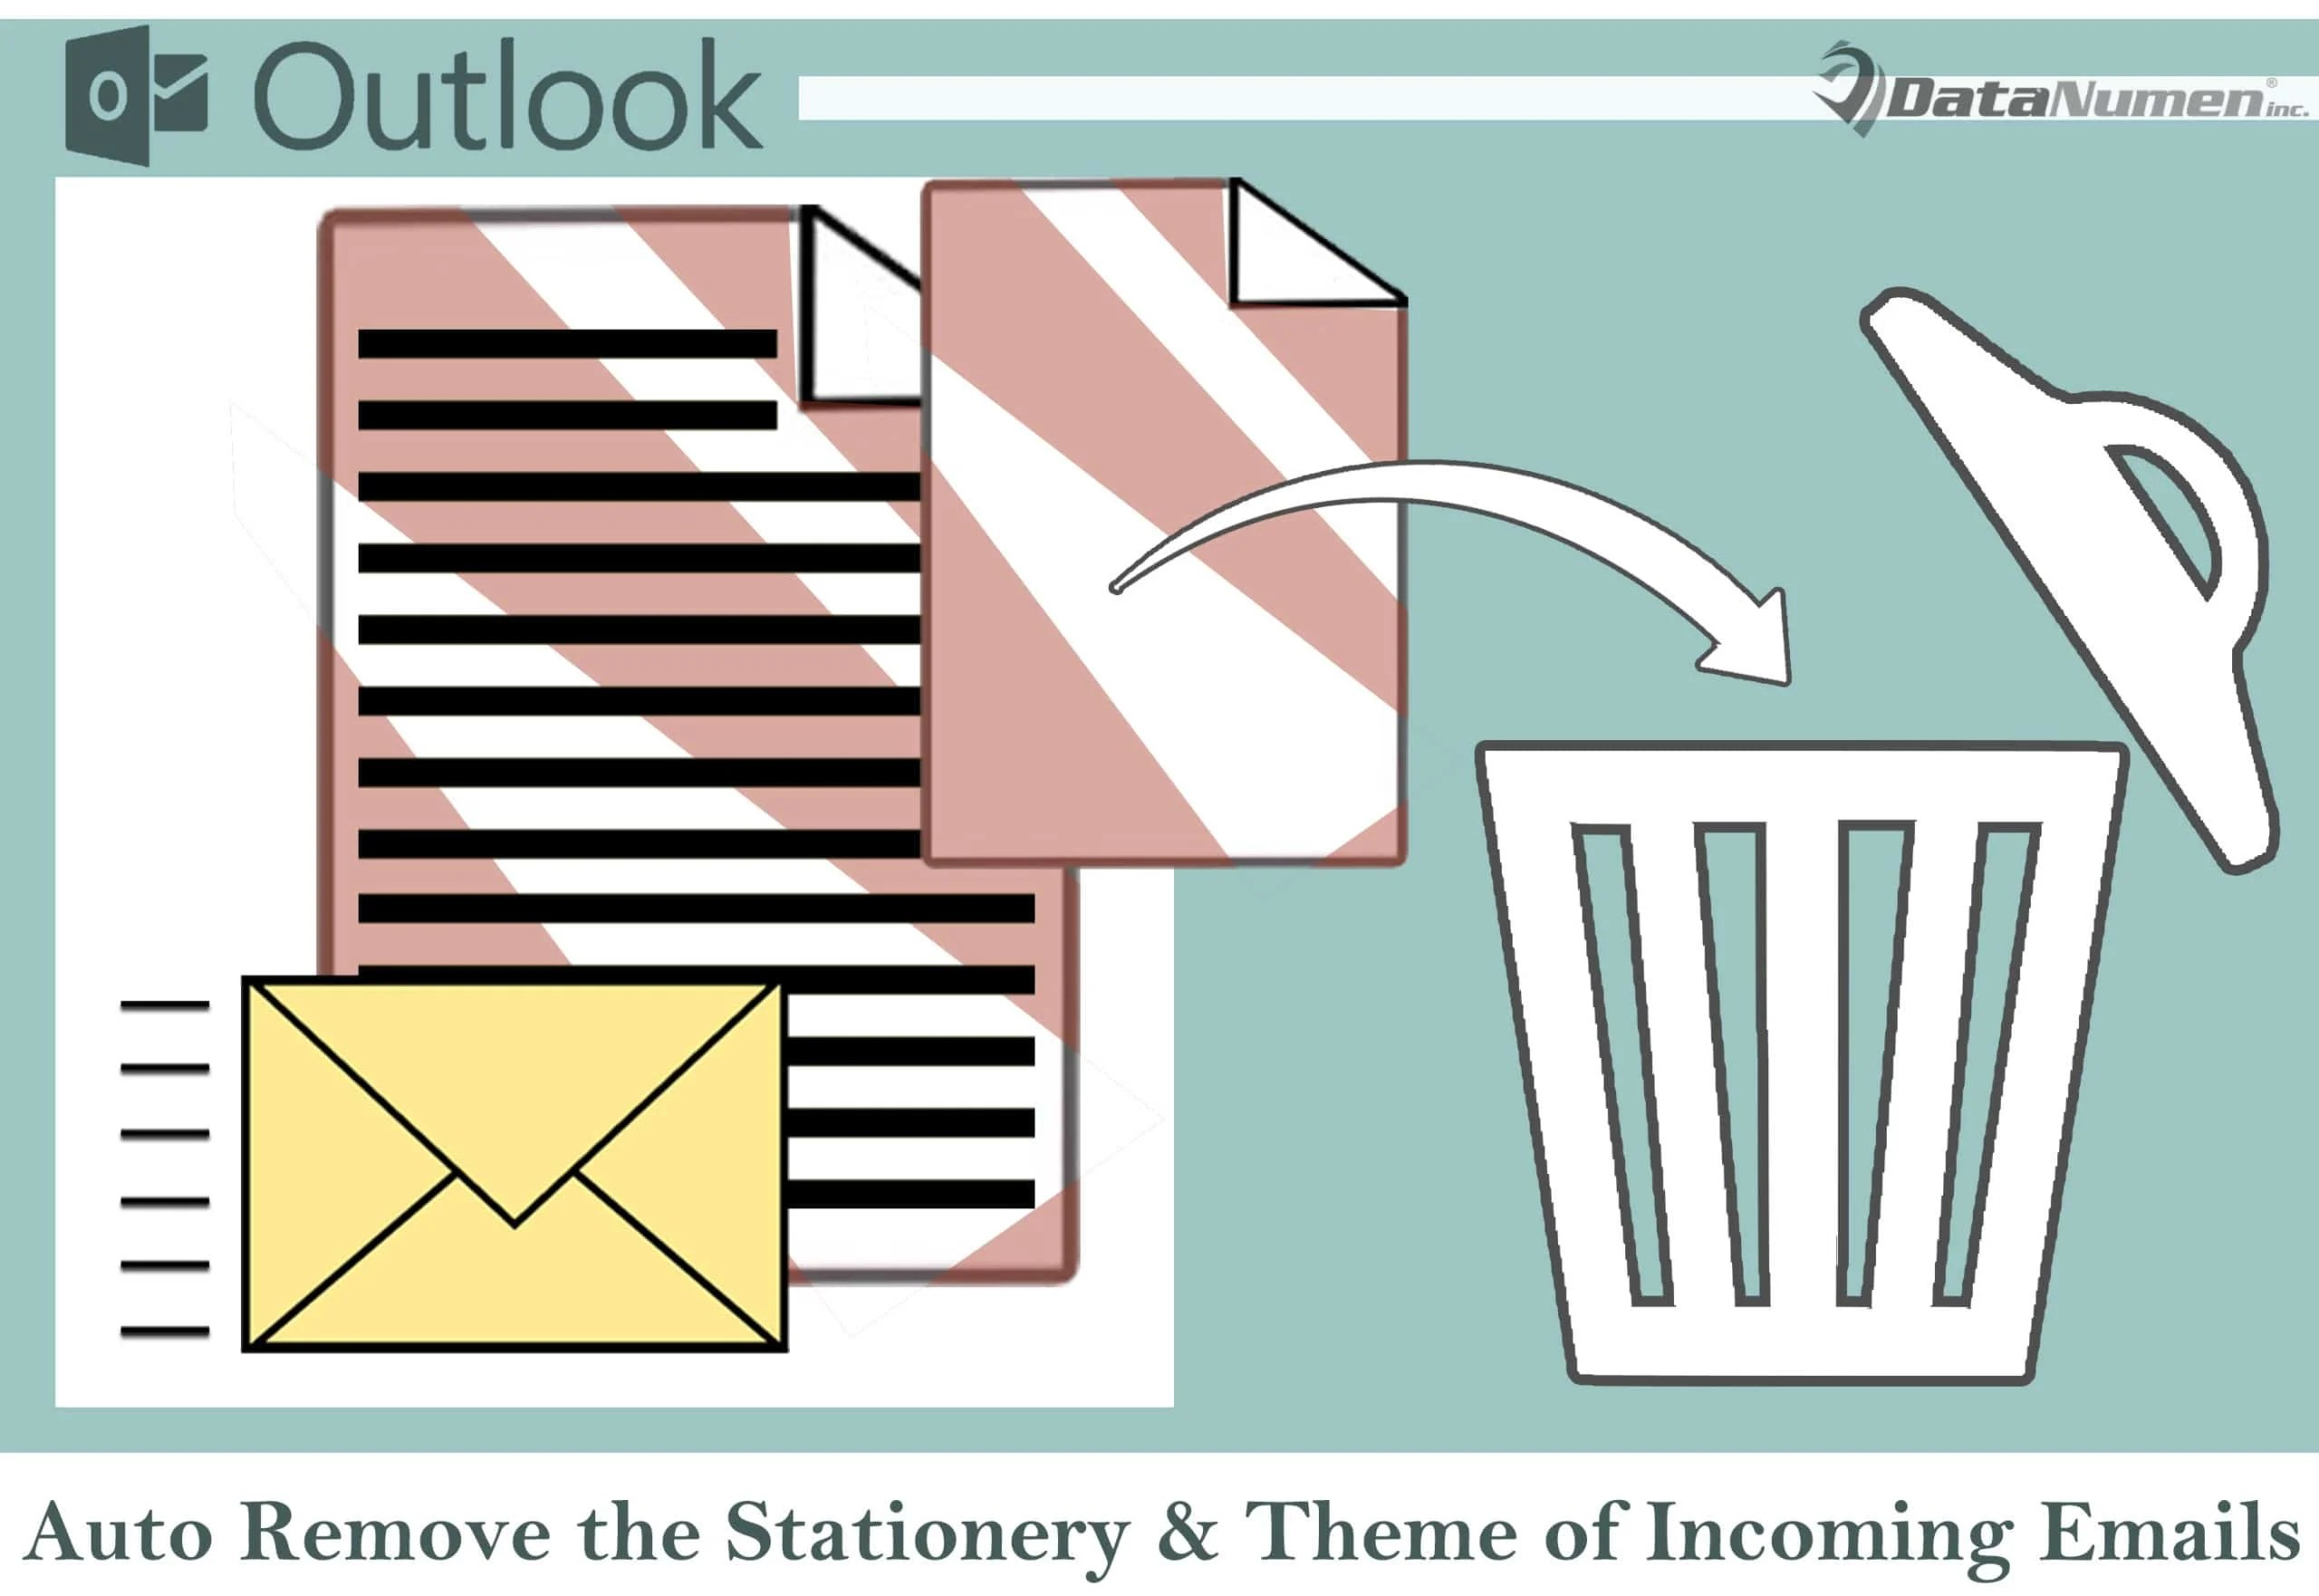 2 Methods to Auto Remove the Stationery & Theme of Incoming